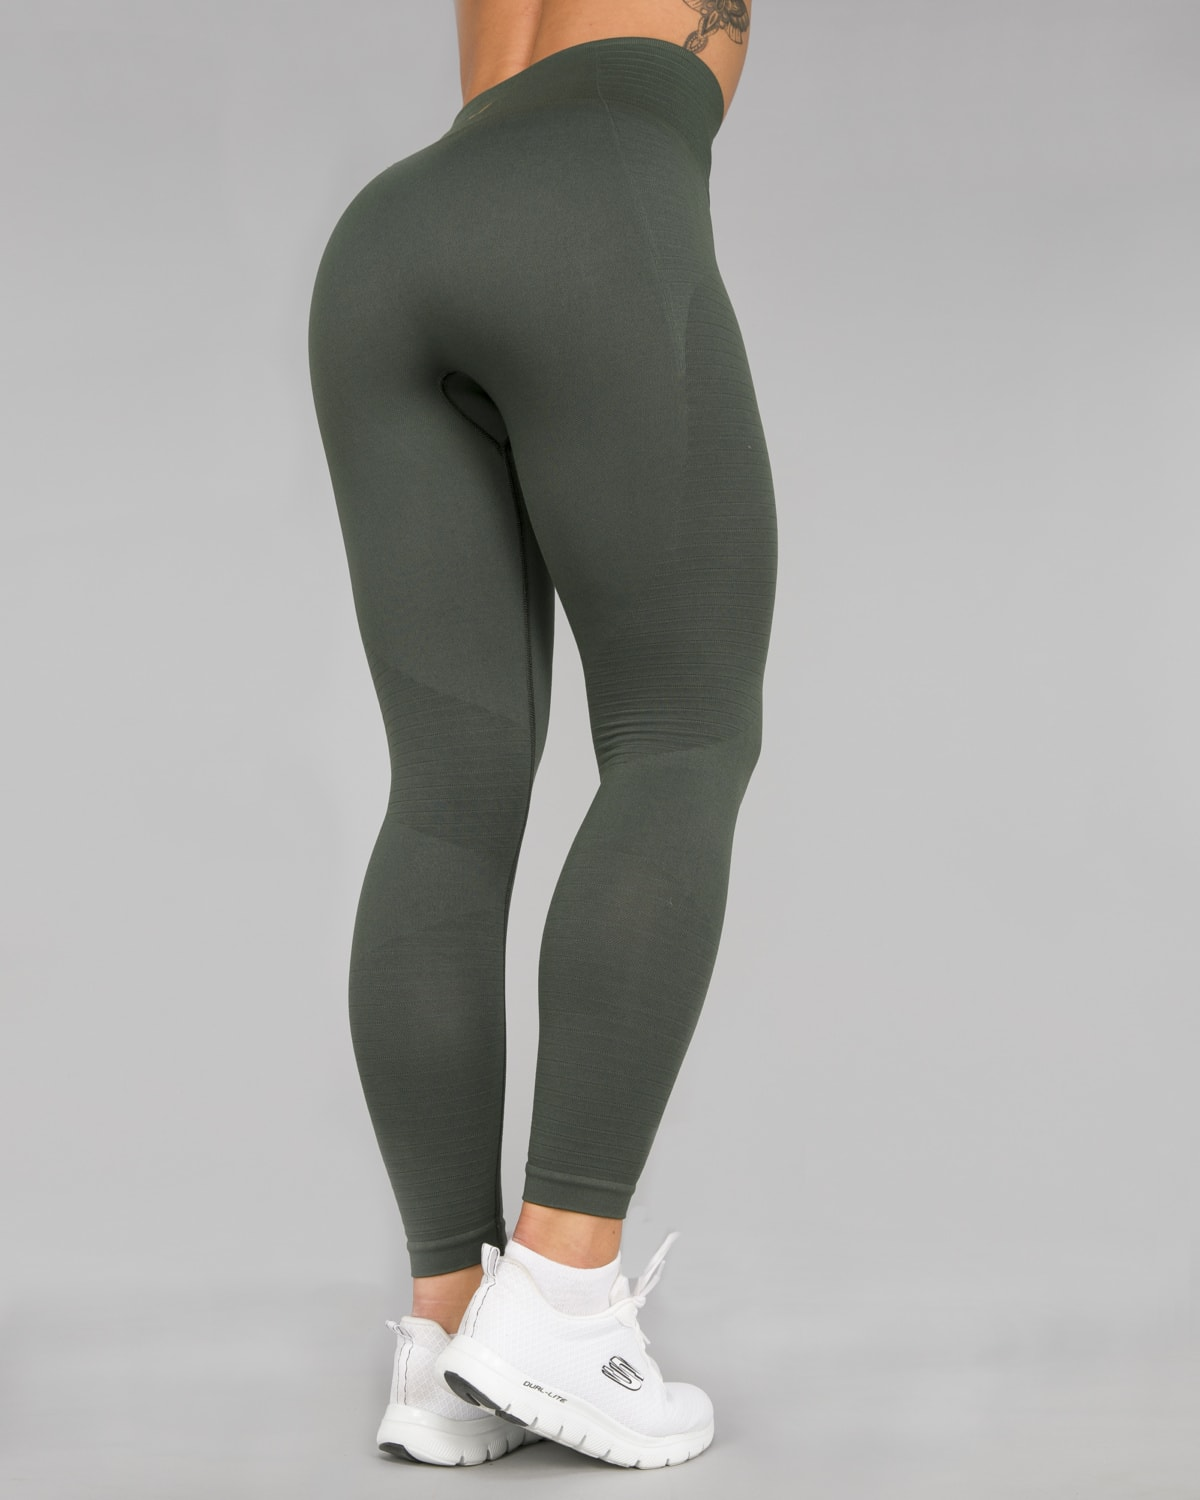 Jerf Gela 2.0 tights dark green12